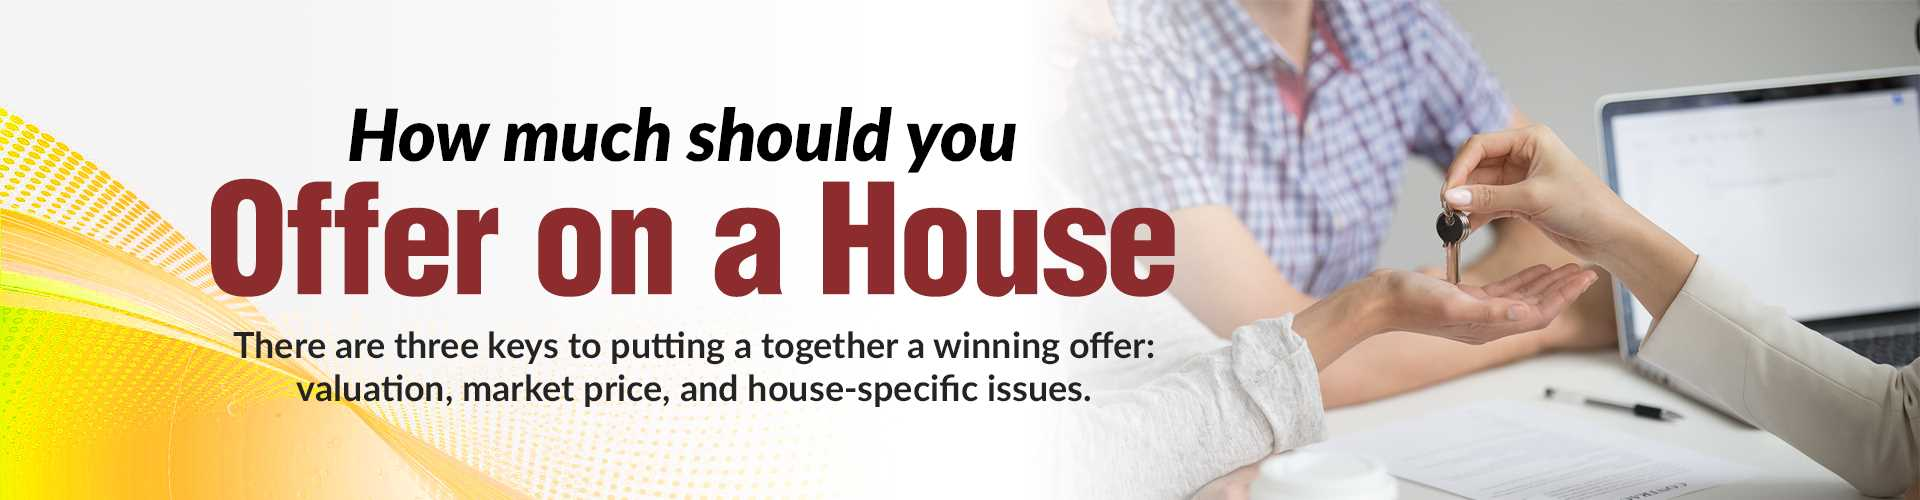 How Much Should You Offer on a House